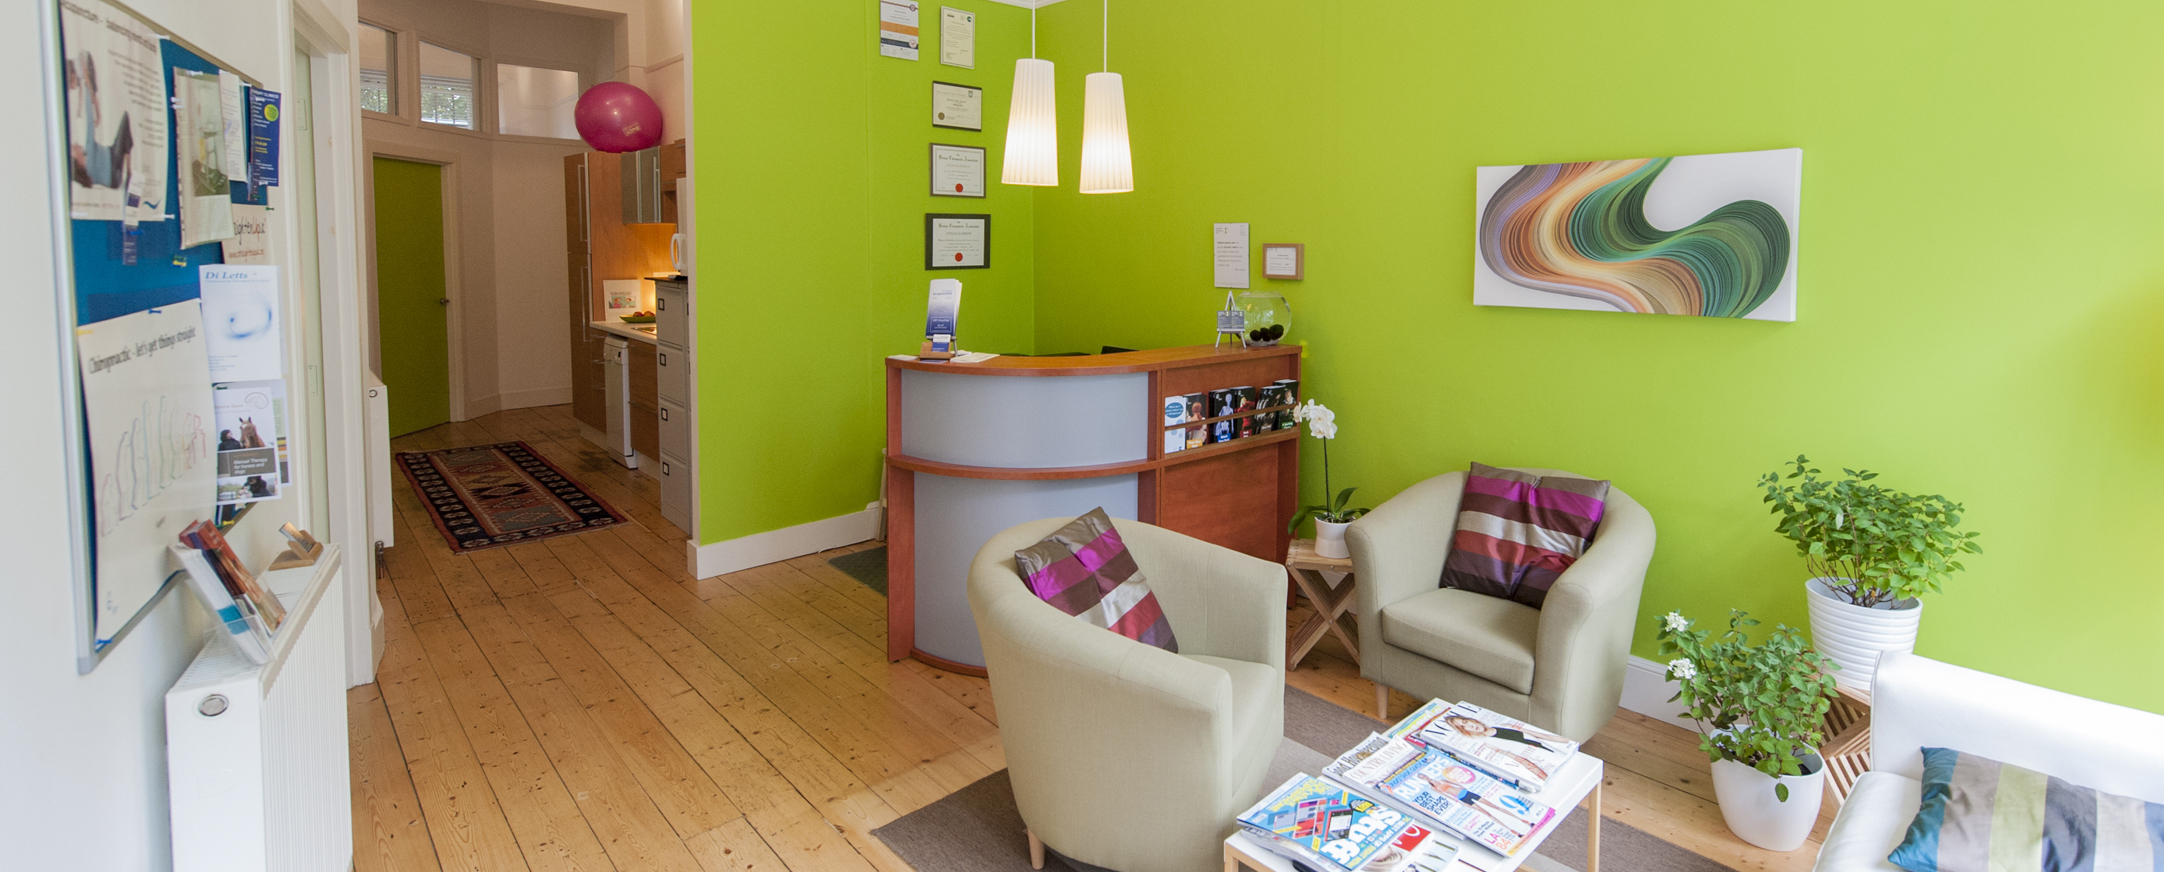 Bruntsfield Chiropractic Clinic